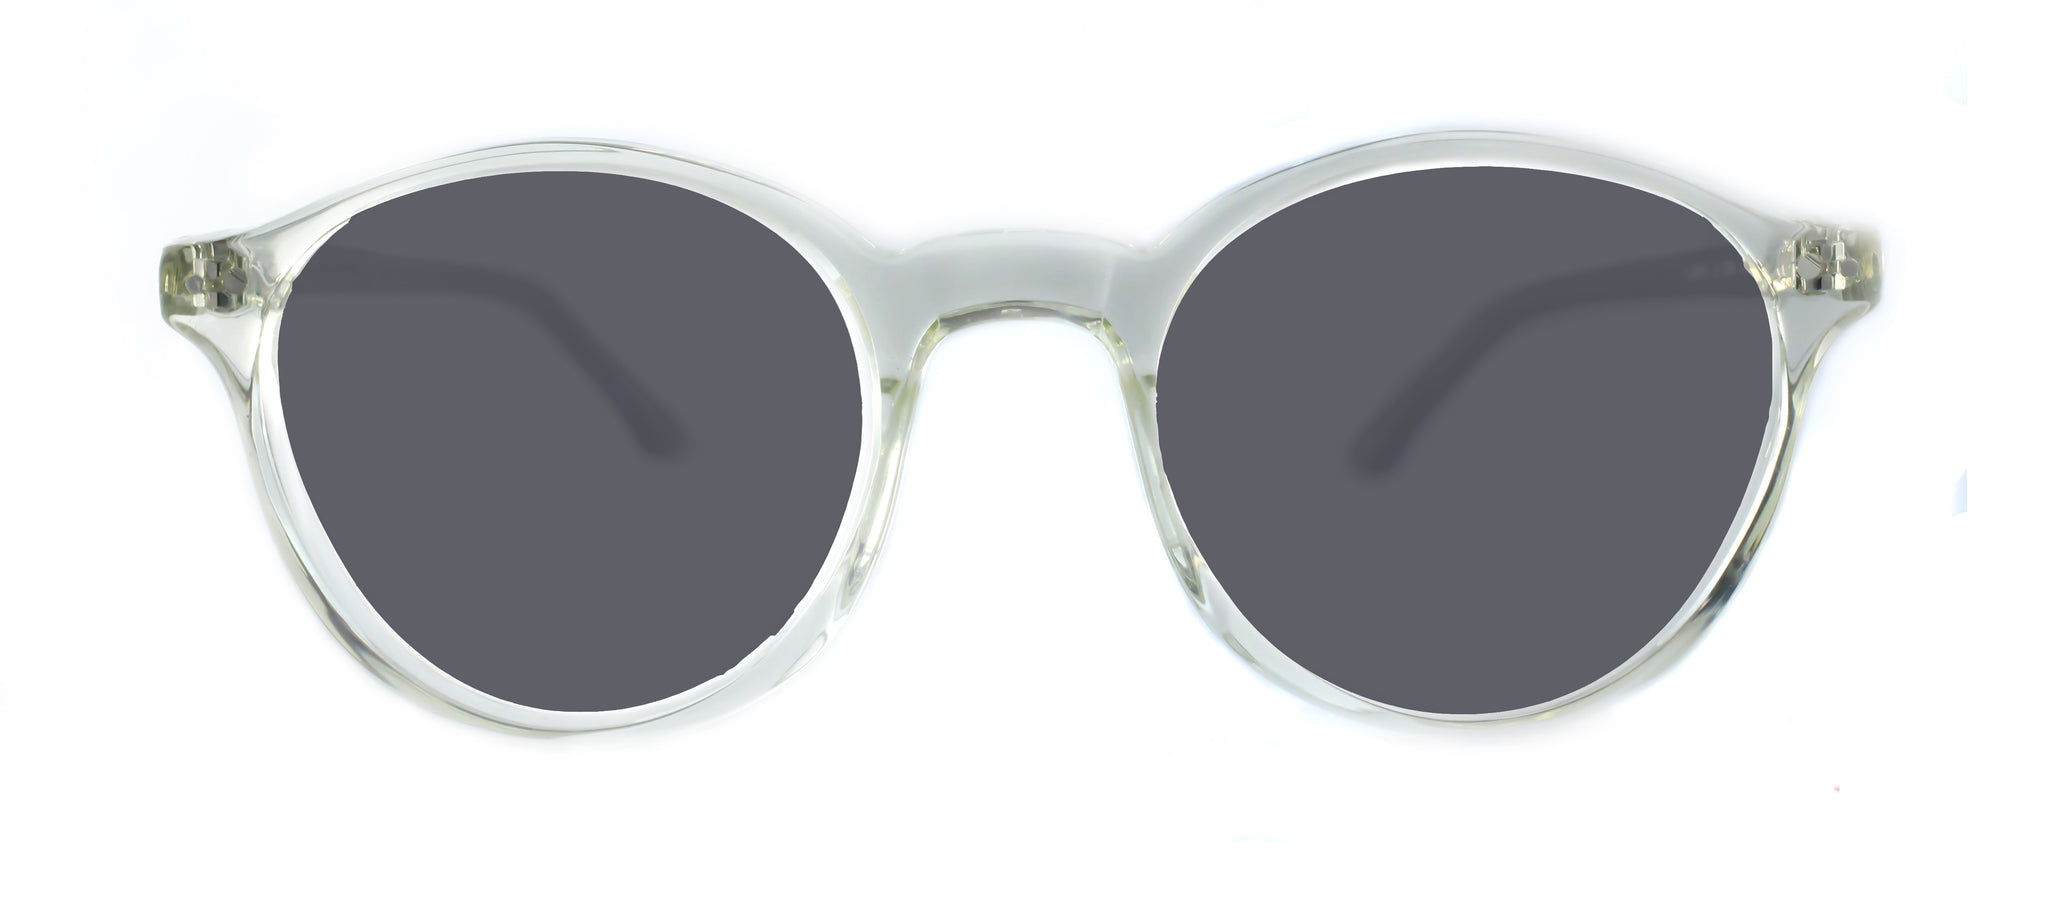 CL Cornea WG Sunglasses